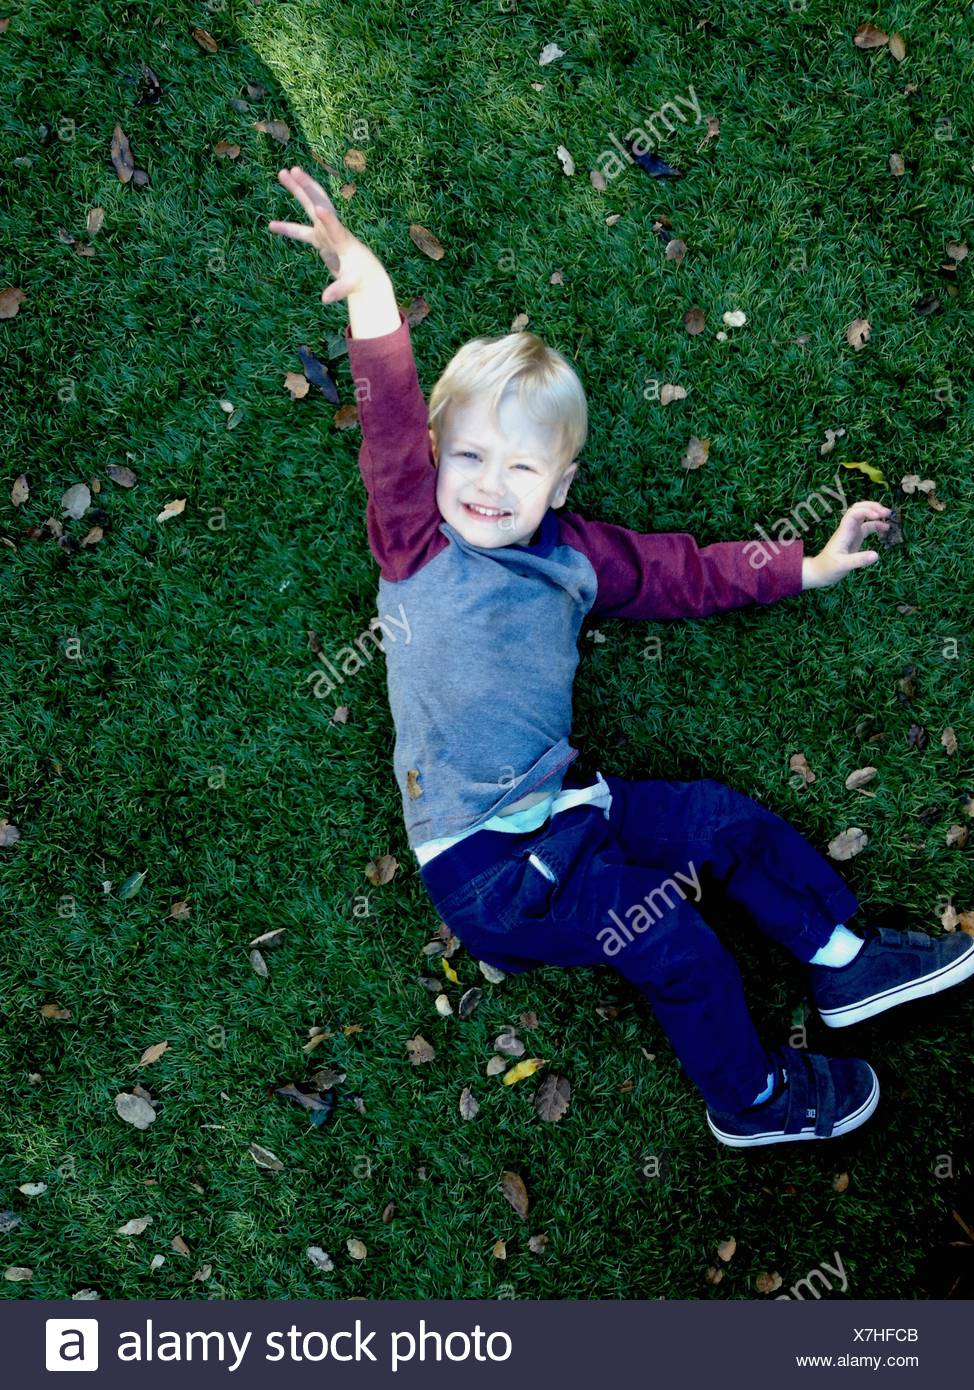 High Angle Portrait Of Smiling Cute Boy Relaxing On Grassy Field - Stock Image